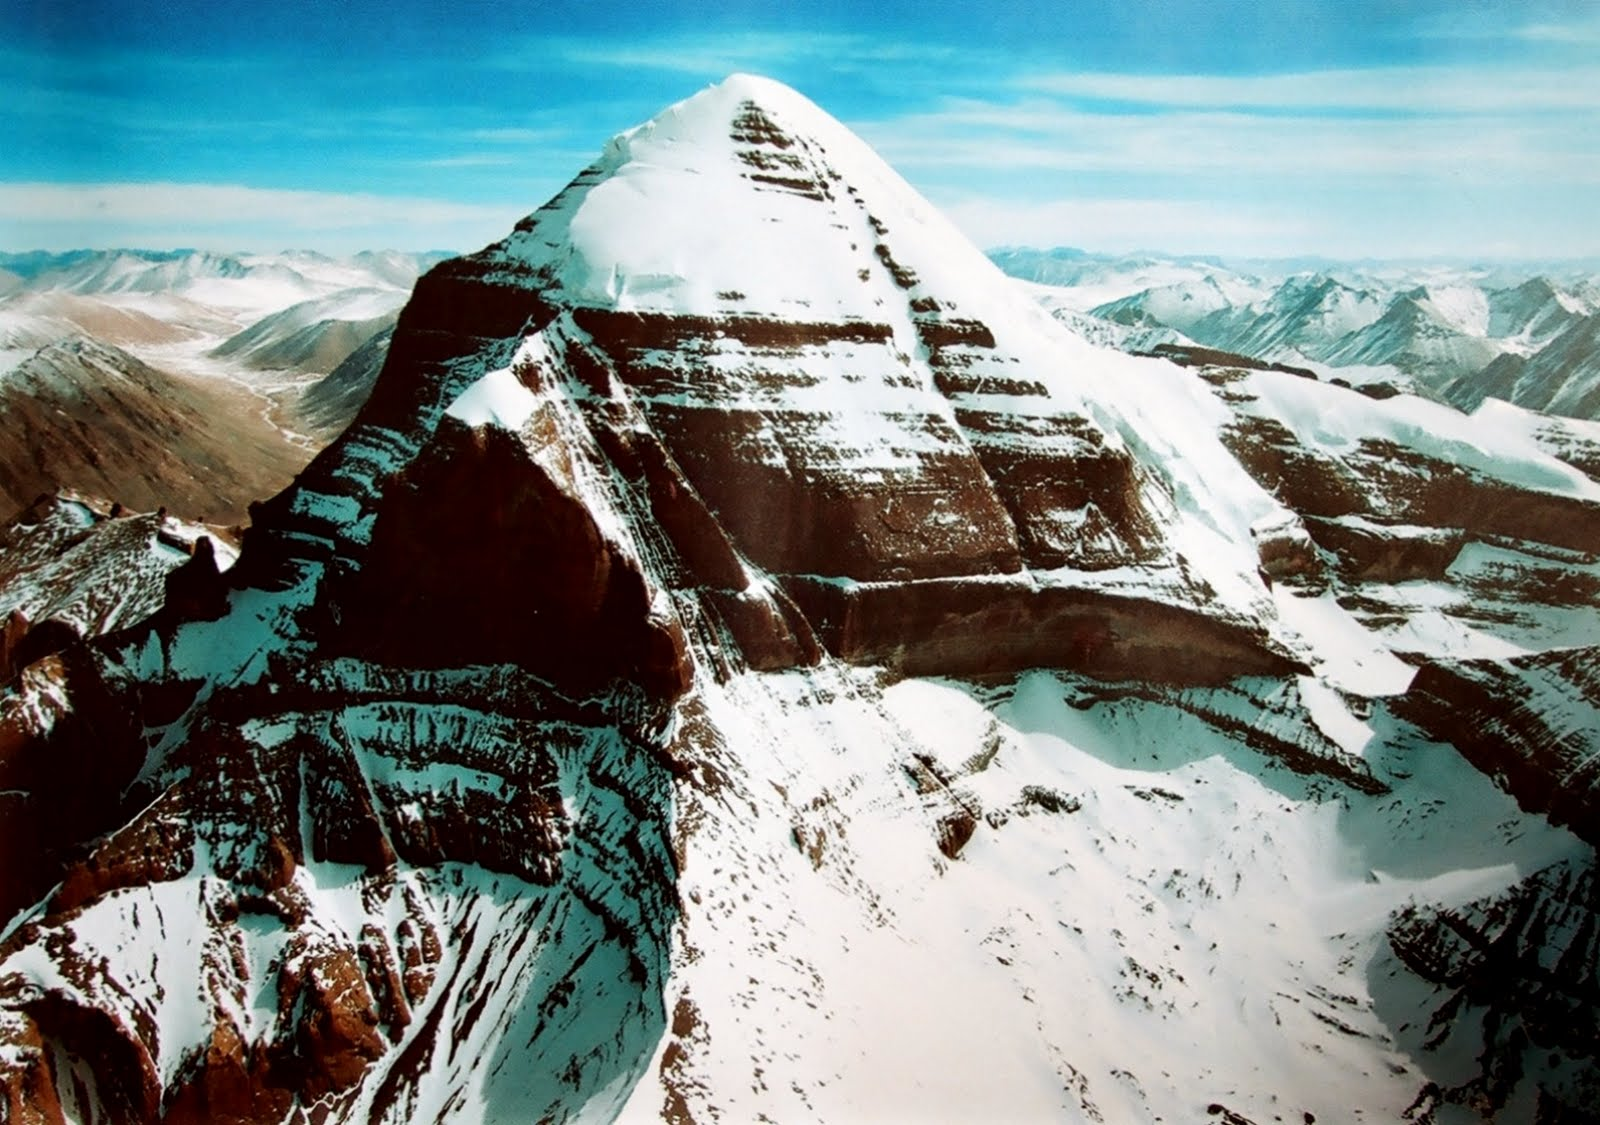 kailash mountain mystery